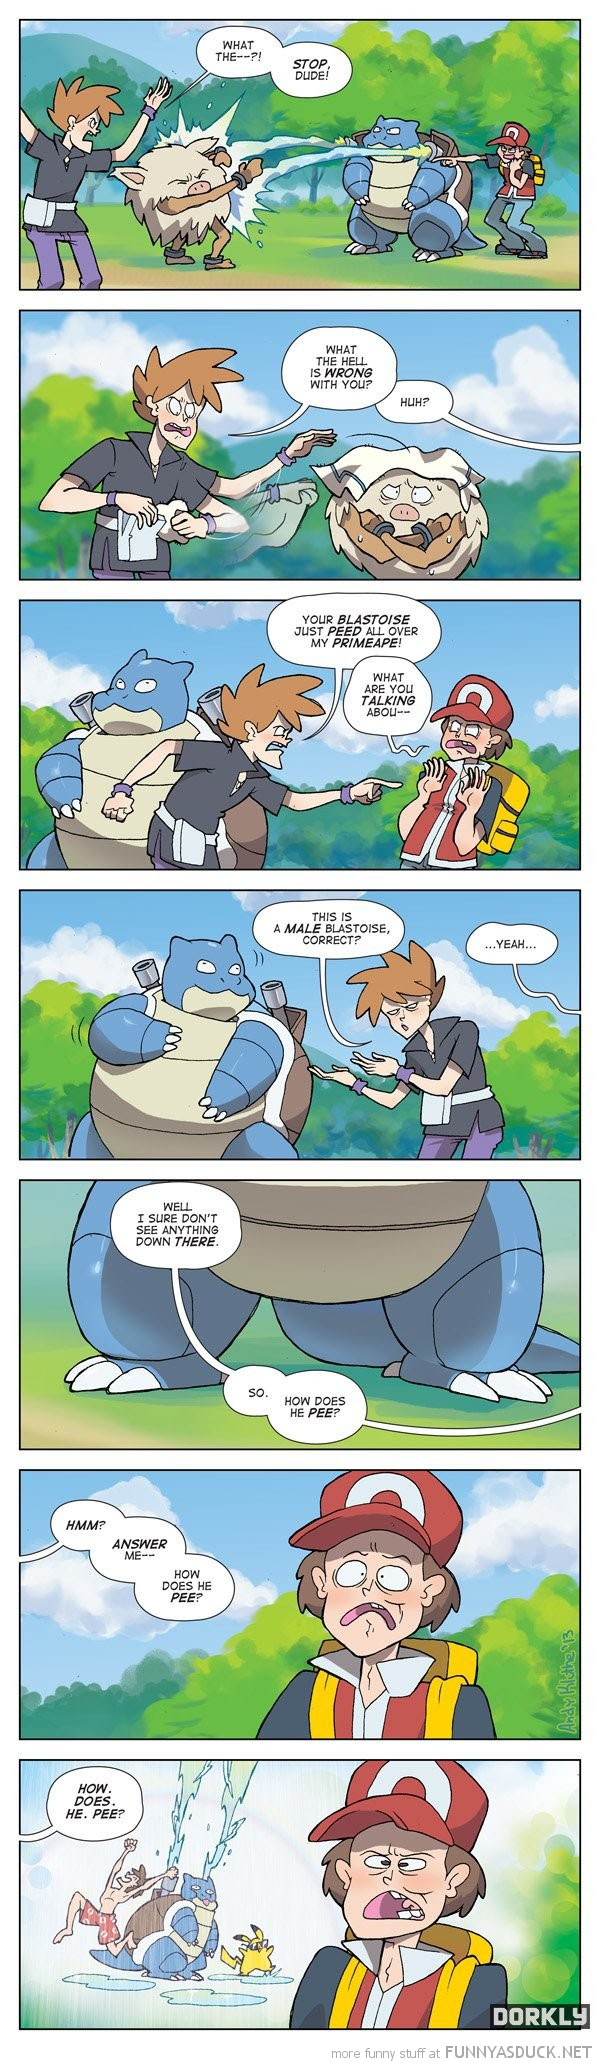 pokemon comic blastoise pee gaming nintendo funny pics pictures pic picture image photo images photos lol